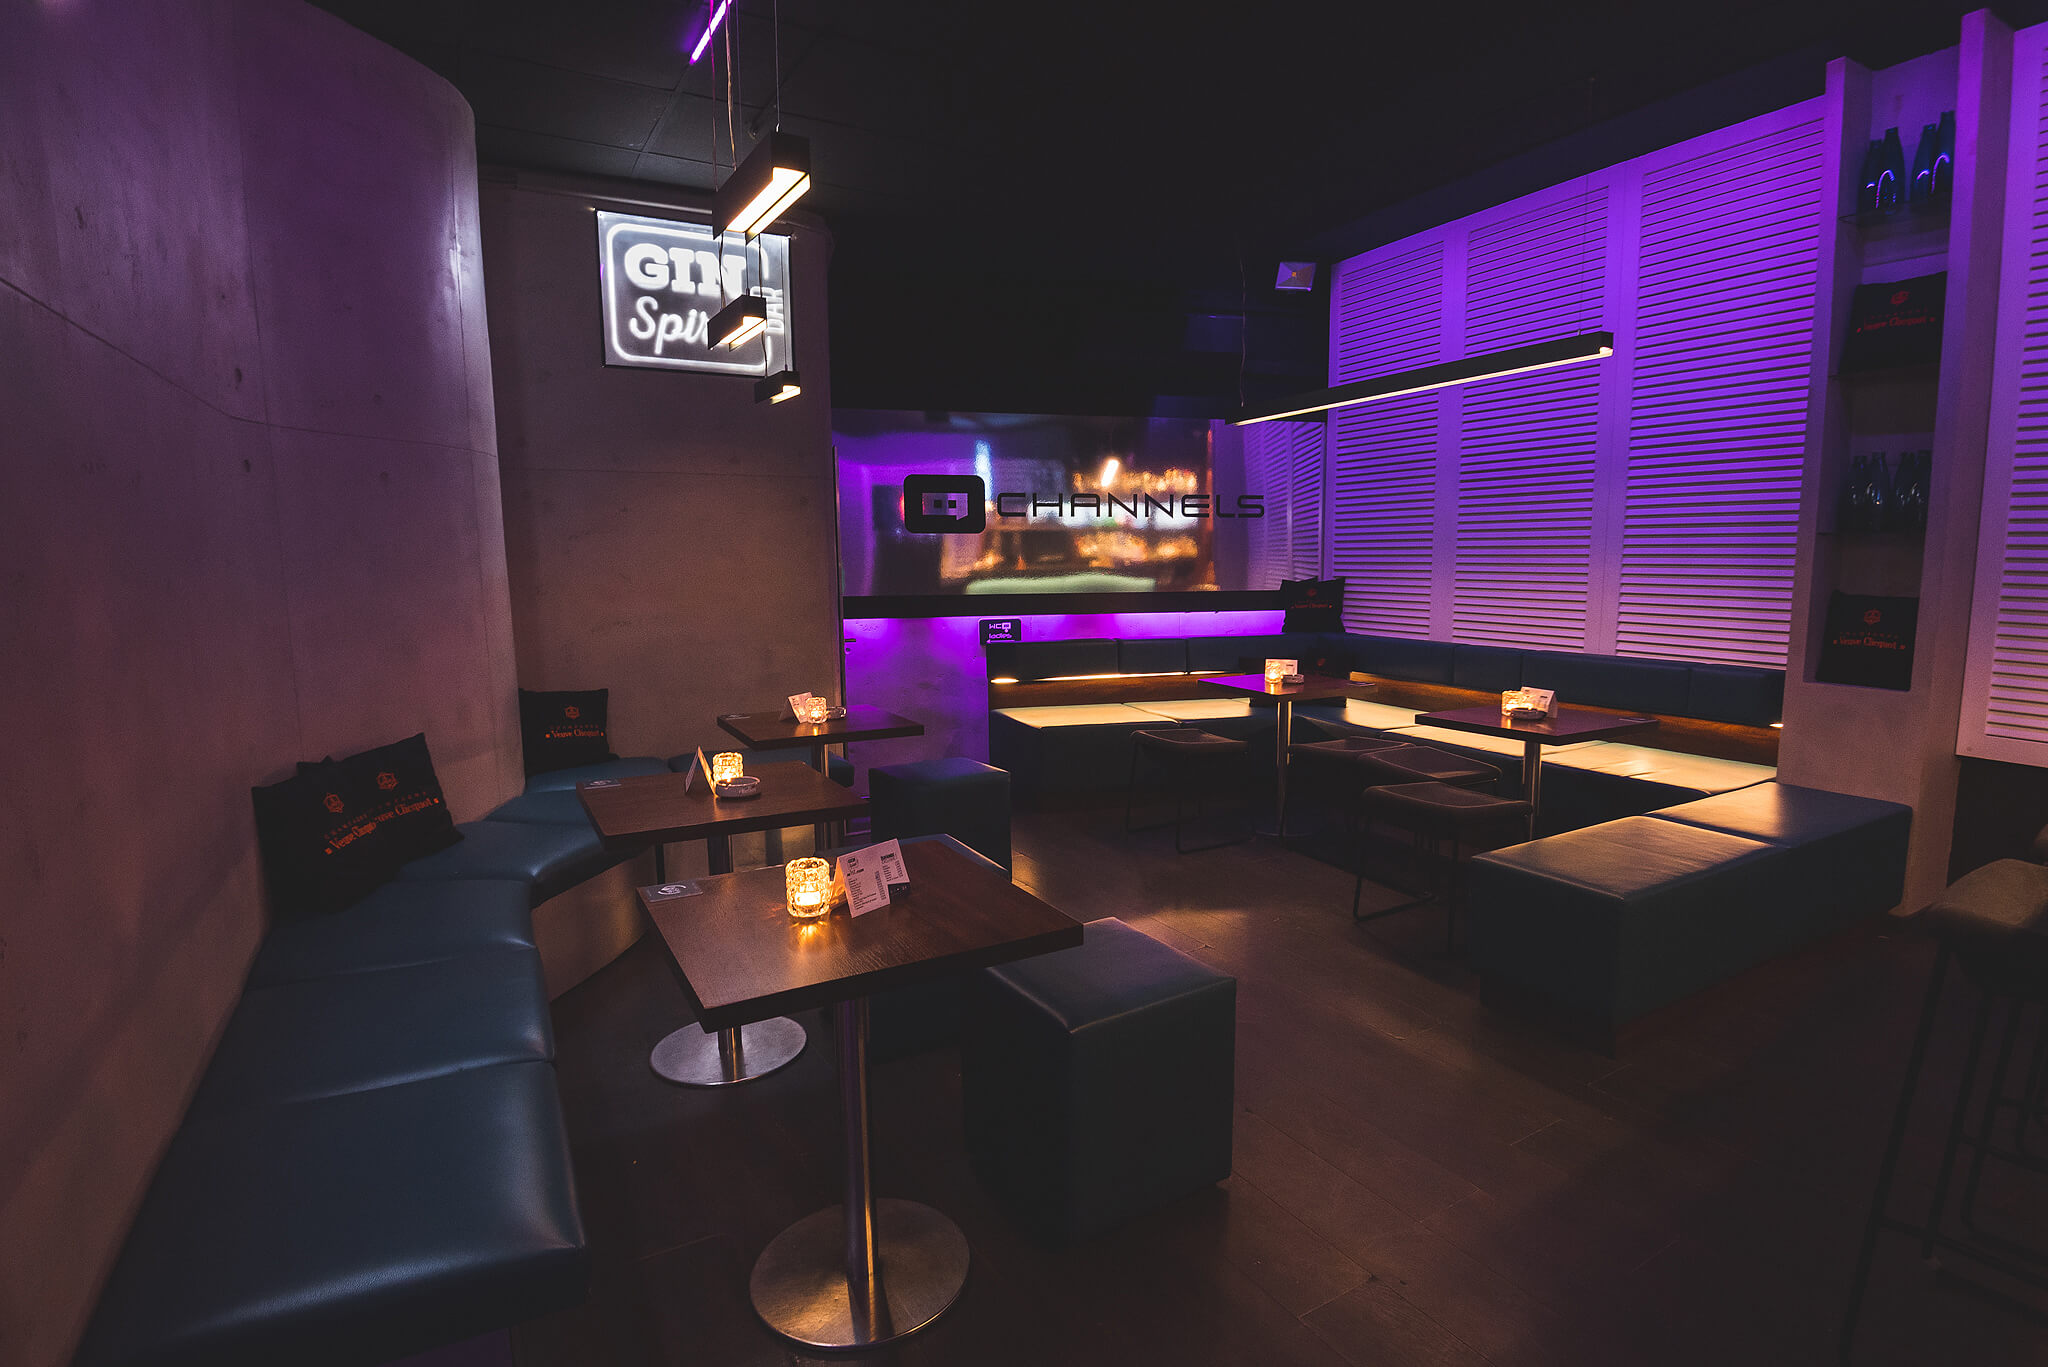 Channels club interior2